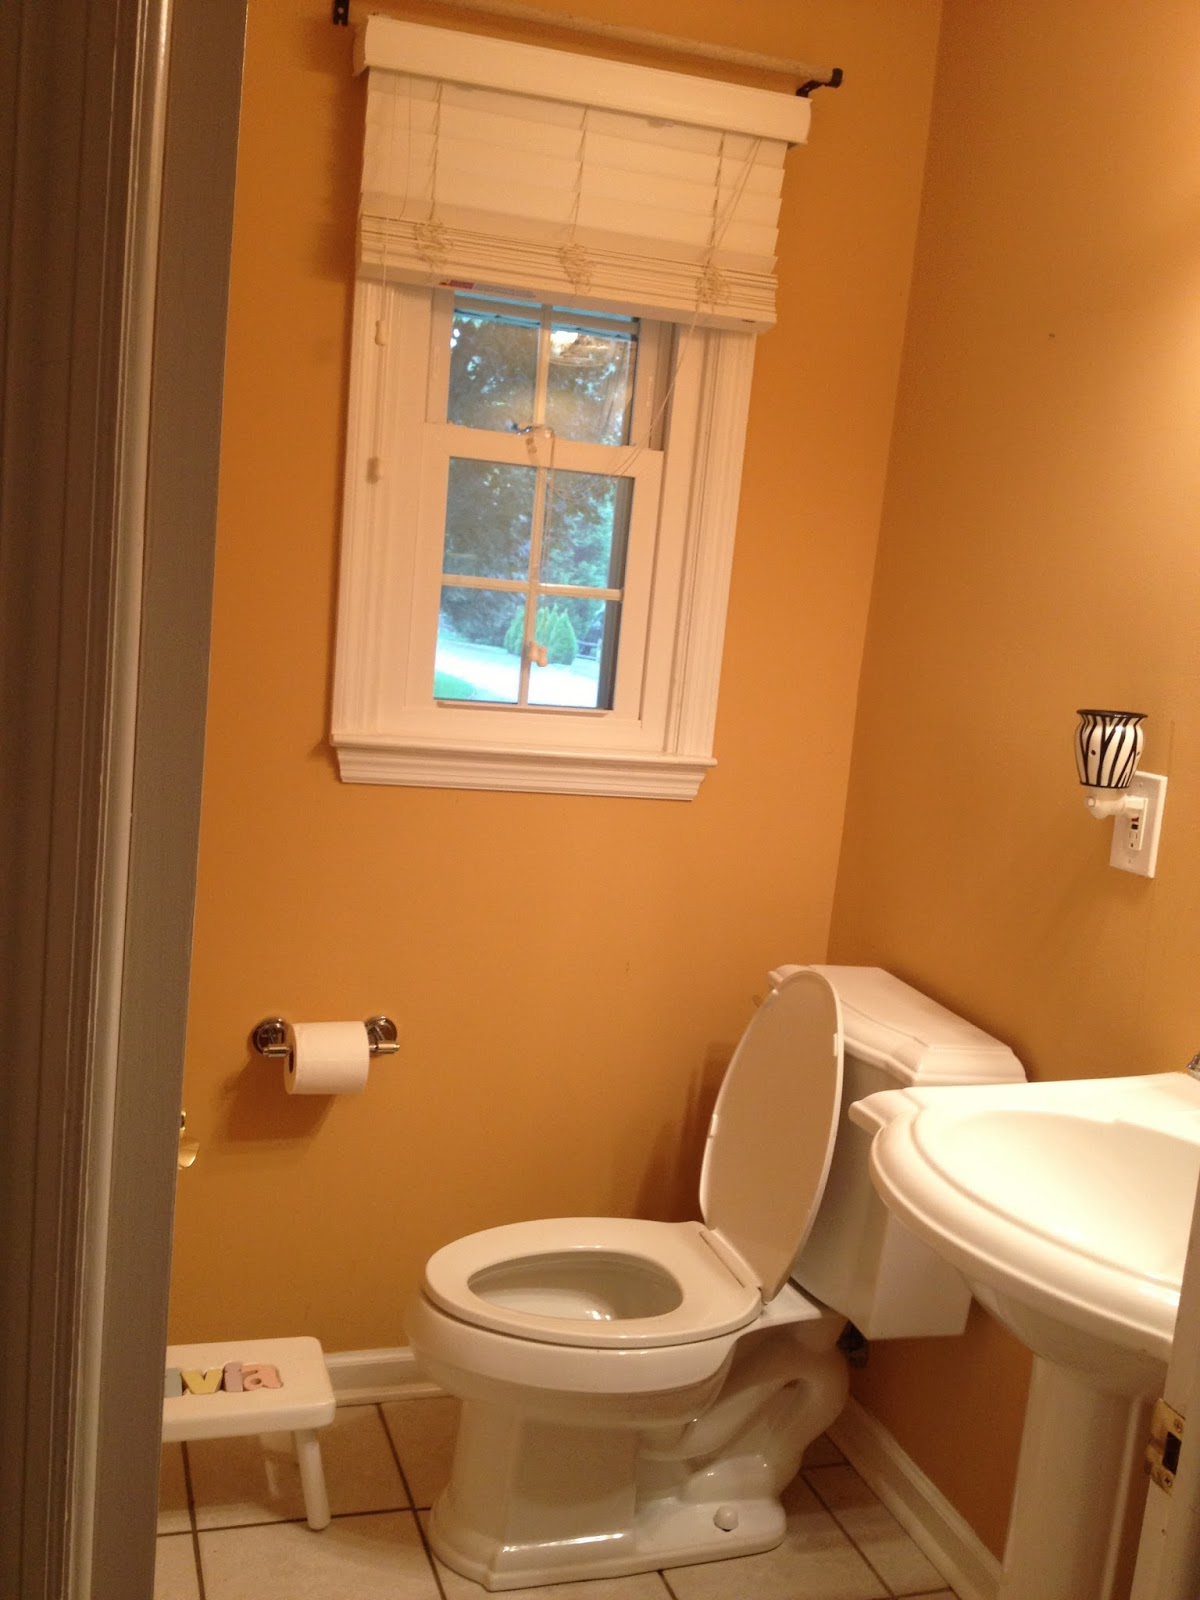 Two it yourself reveal 100 small bathroom makeover tons of ideas for inexpensive upgrades - Pictures of small bathrooms ...